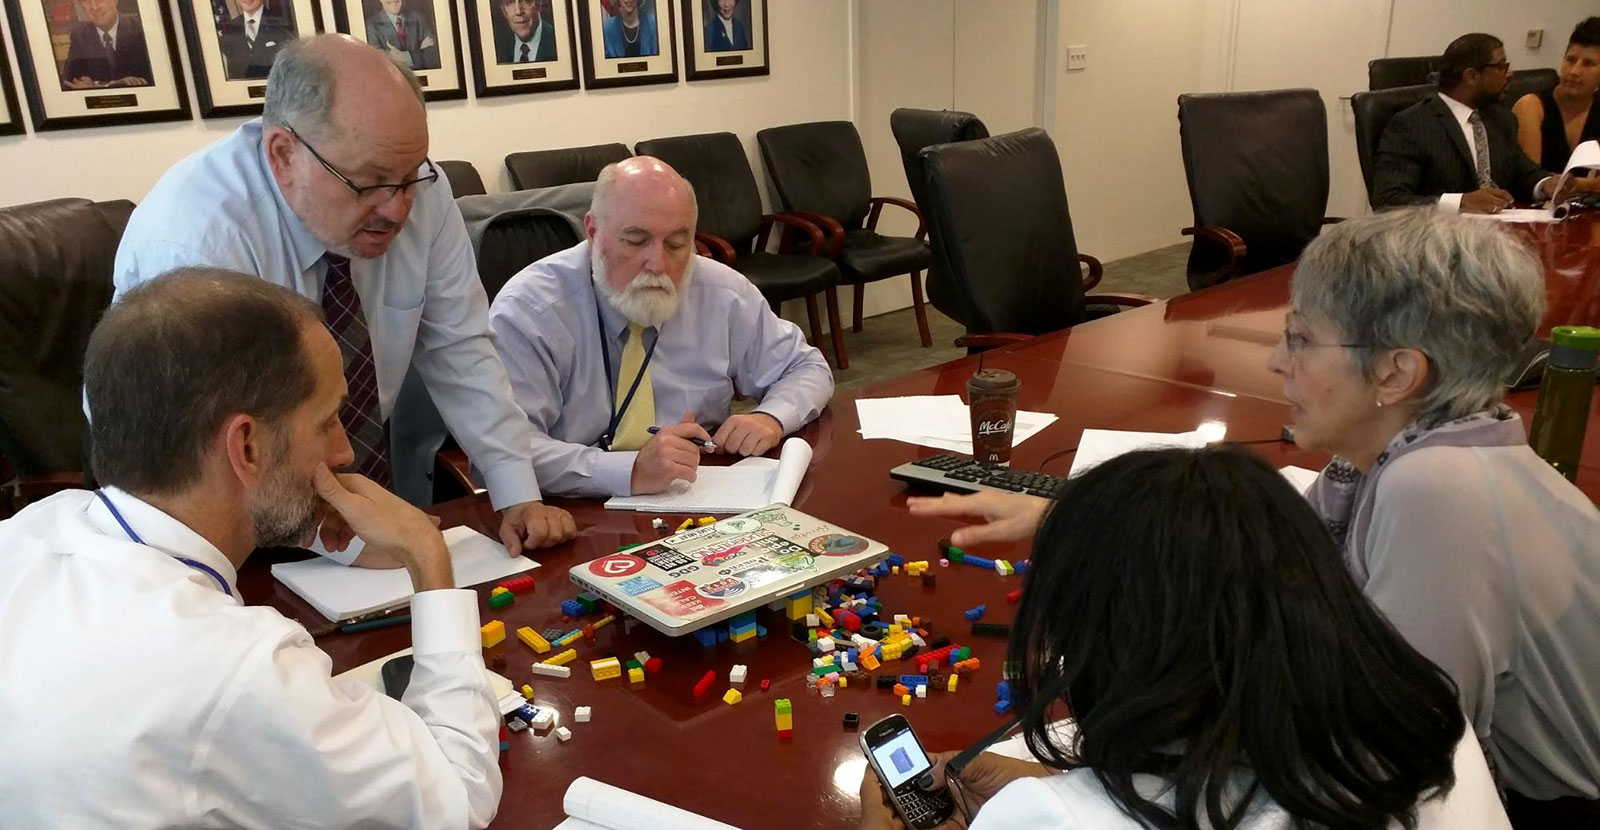 Executives from the Small Business Administration learn agile development with Legos.